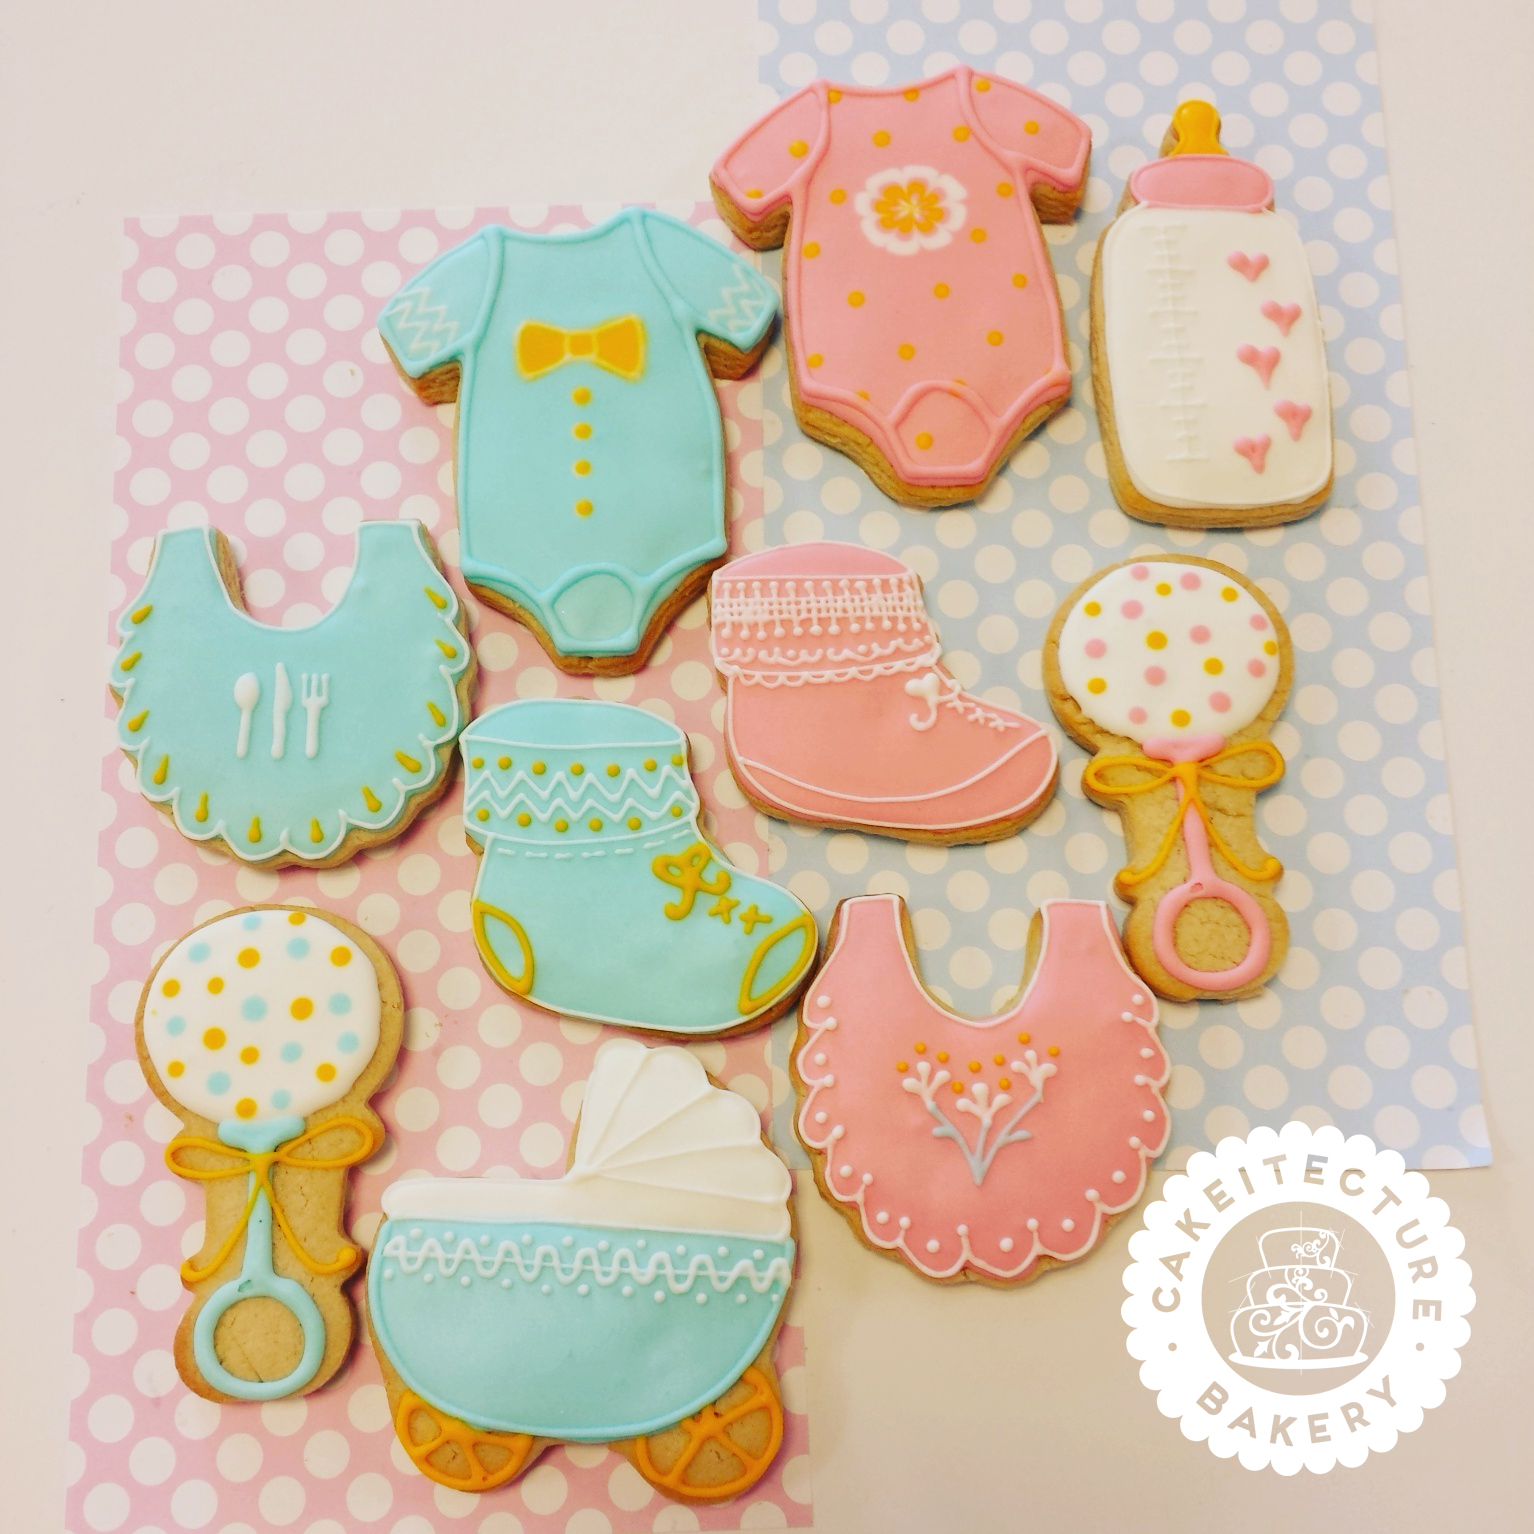 Cakeitecture Bakery baby shower cookies.jpg